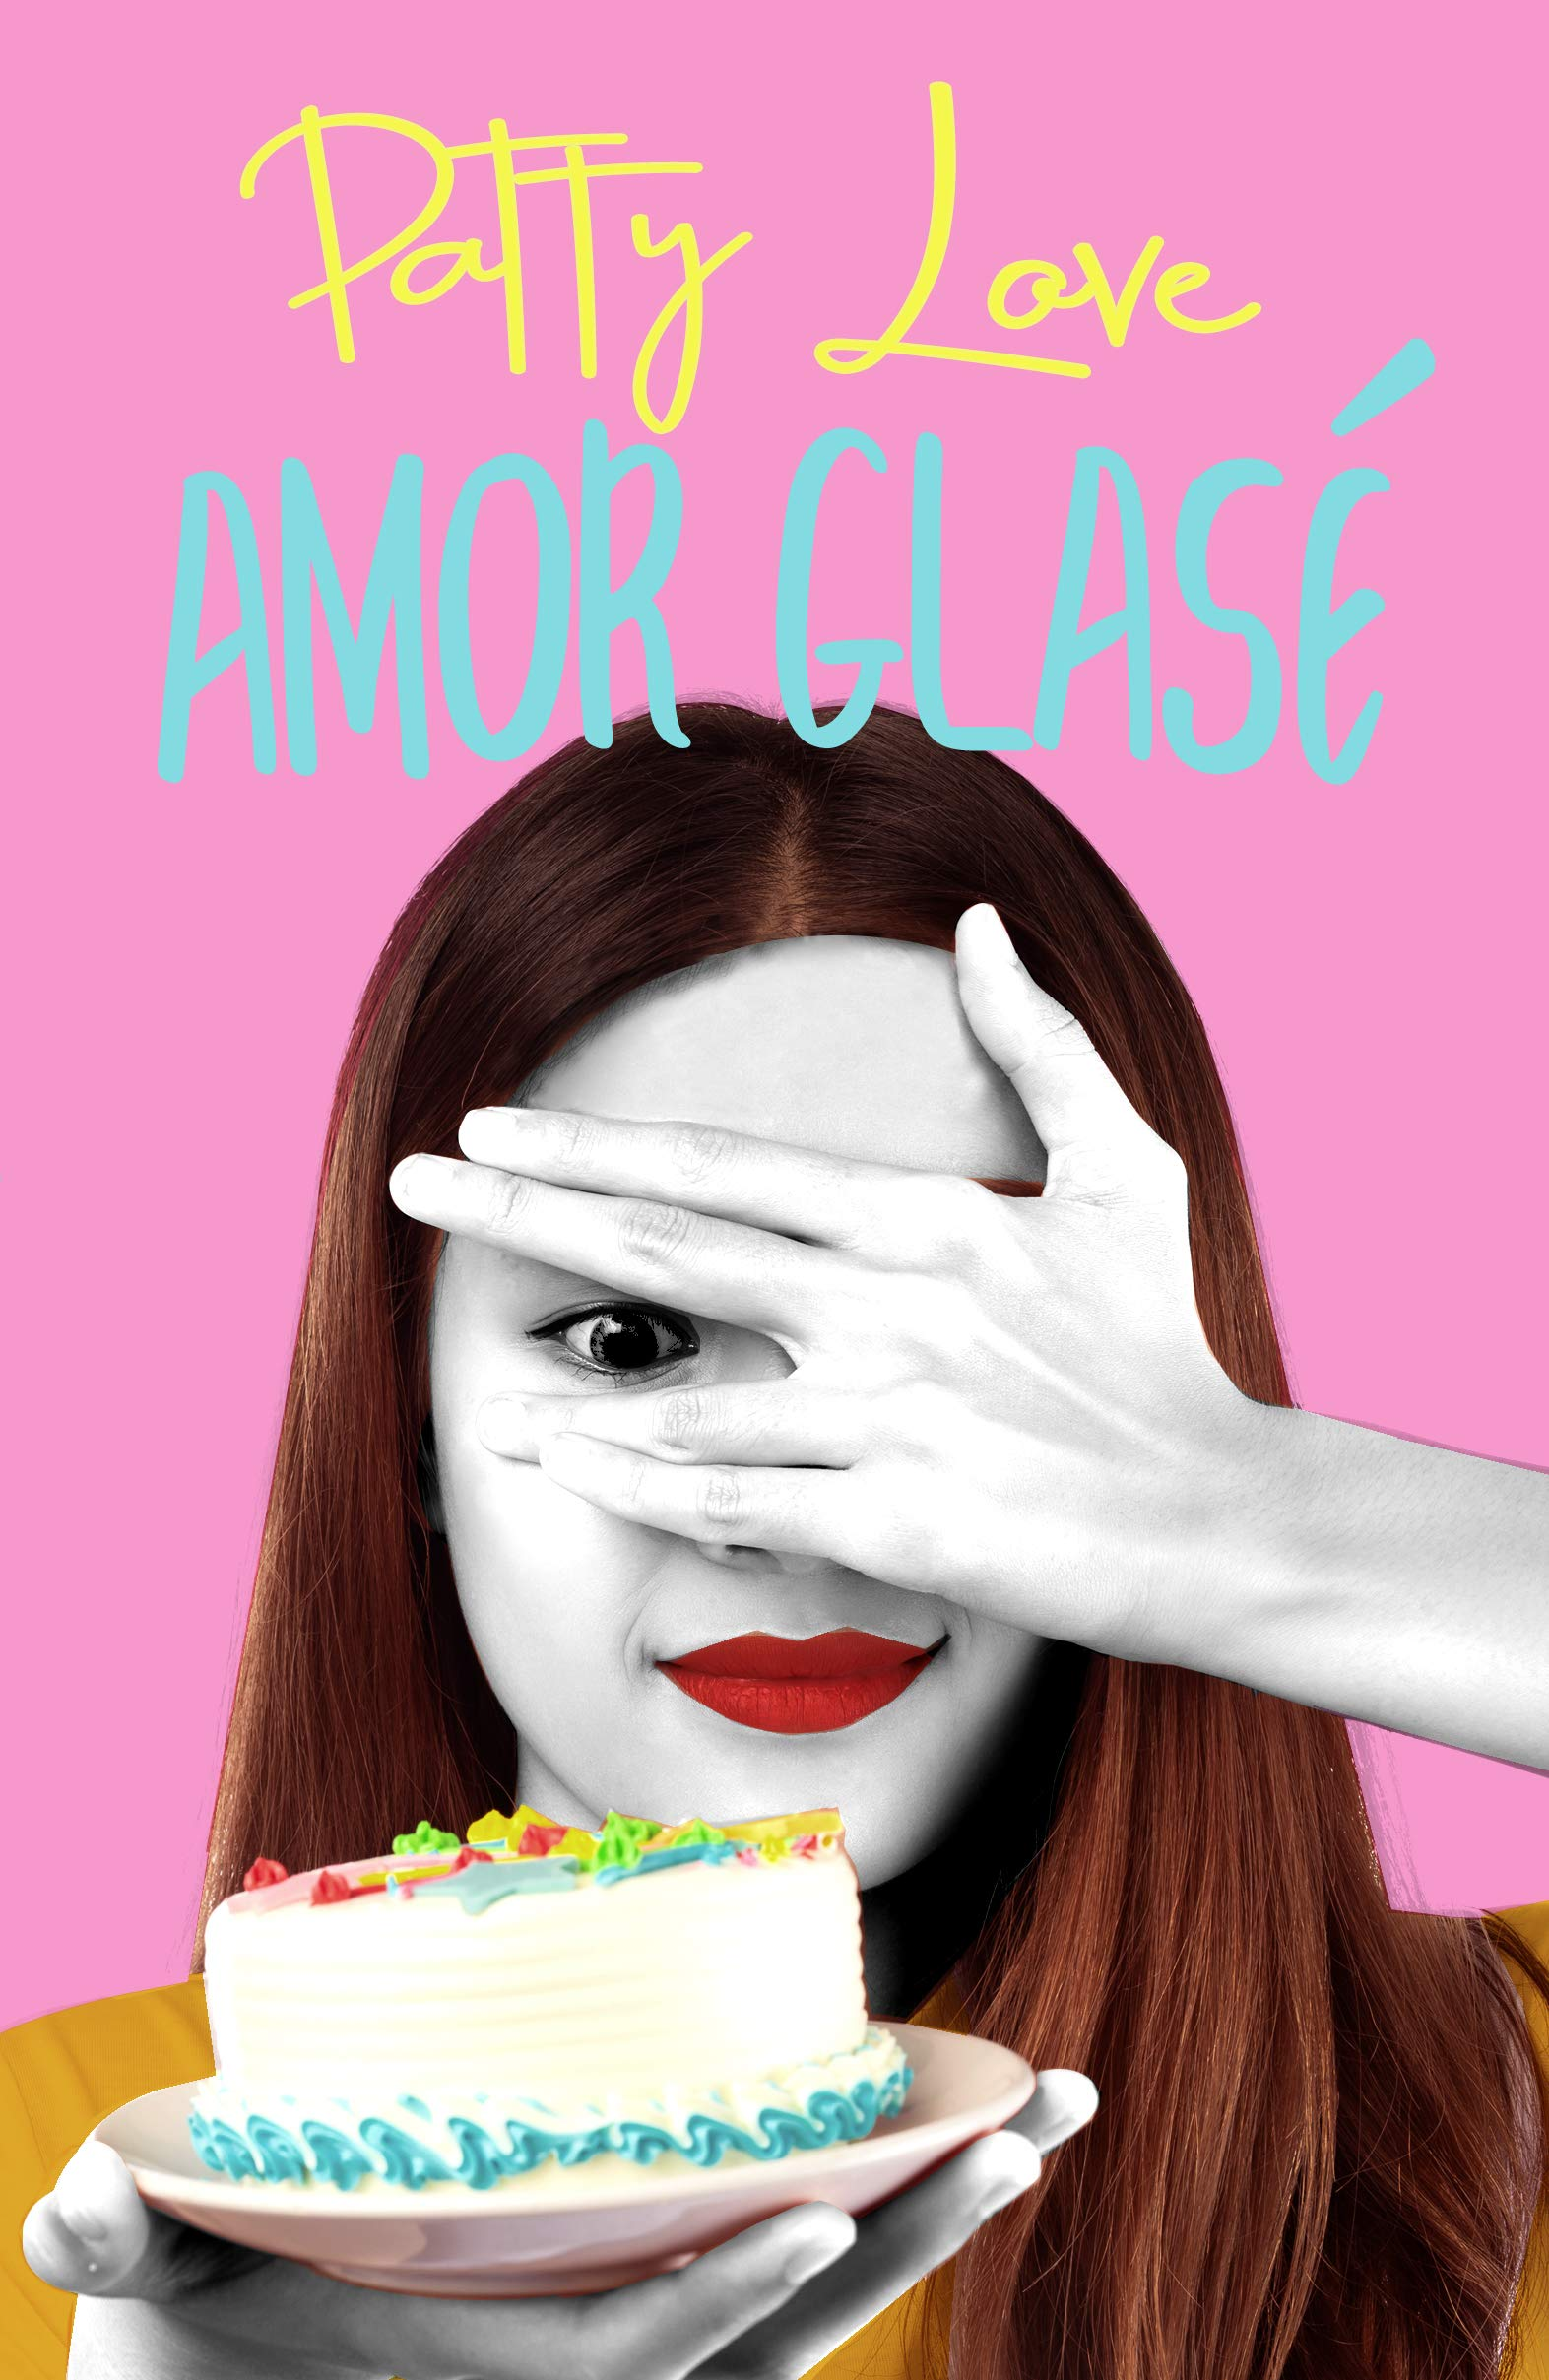 Amor glasé por Patty Love